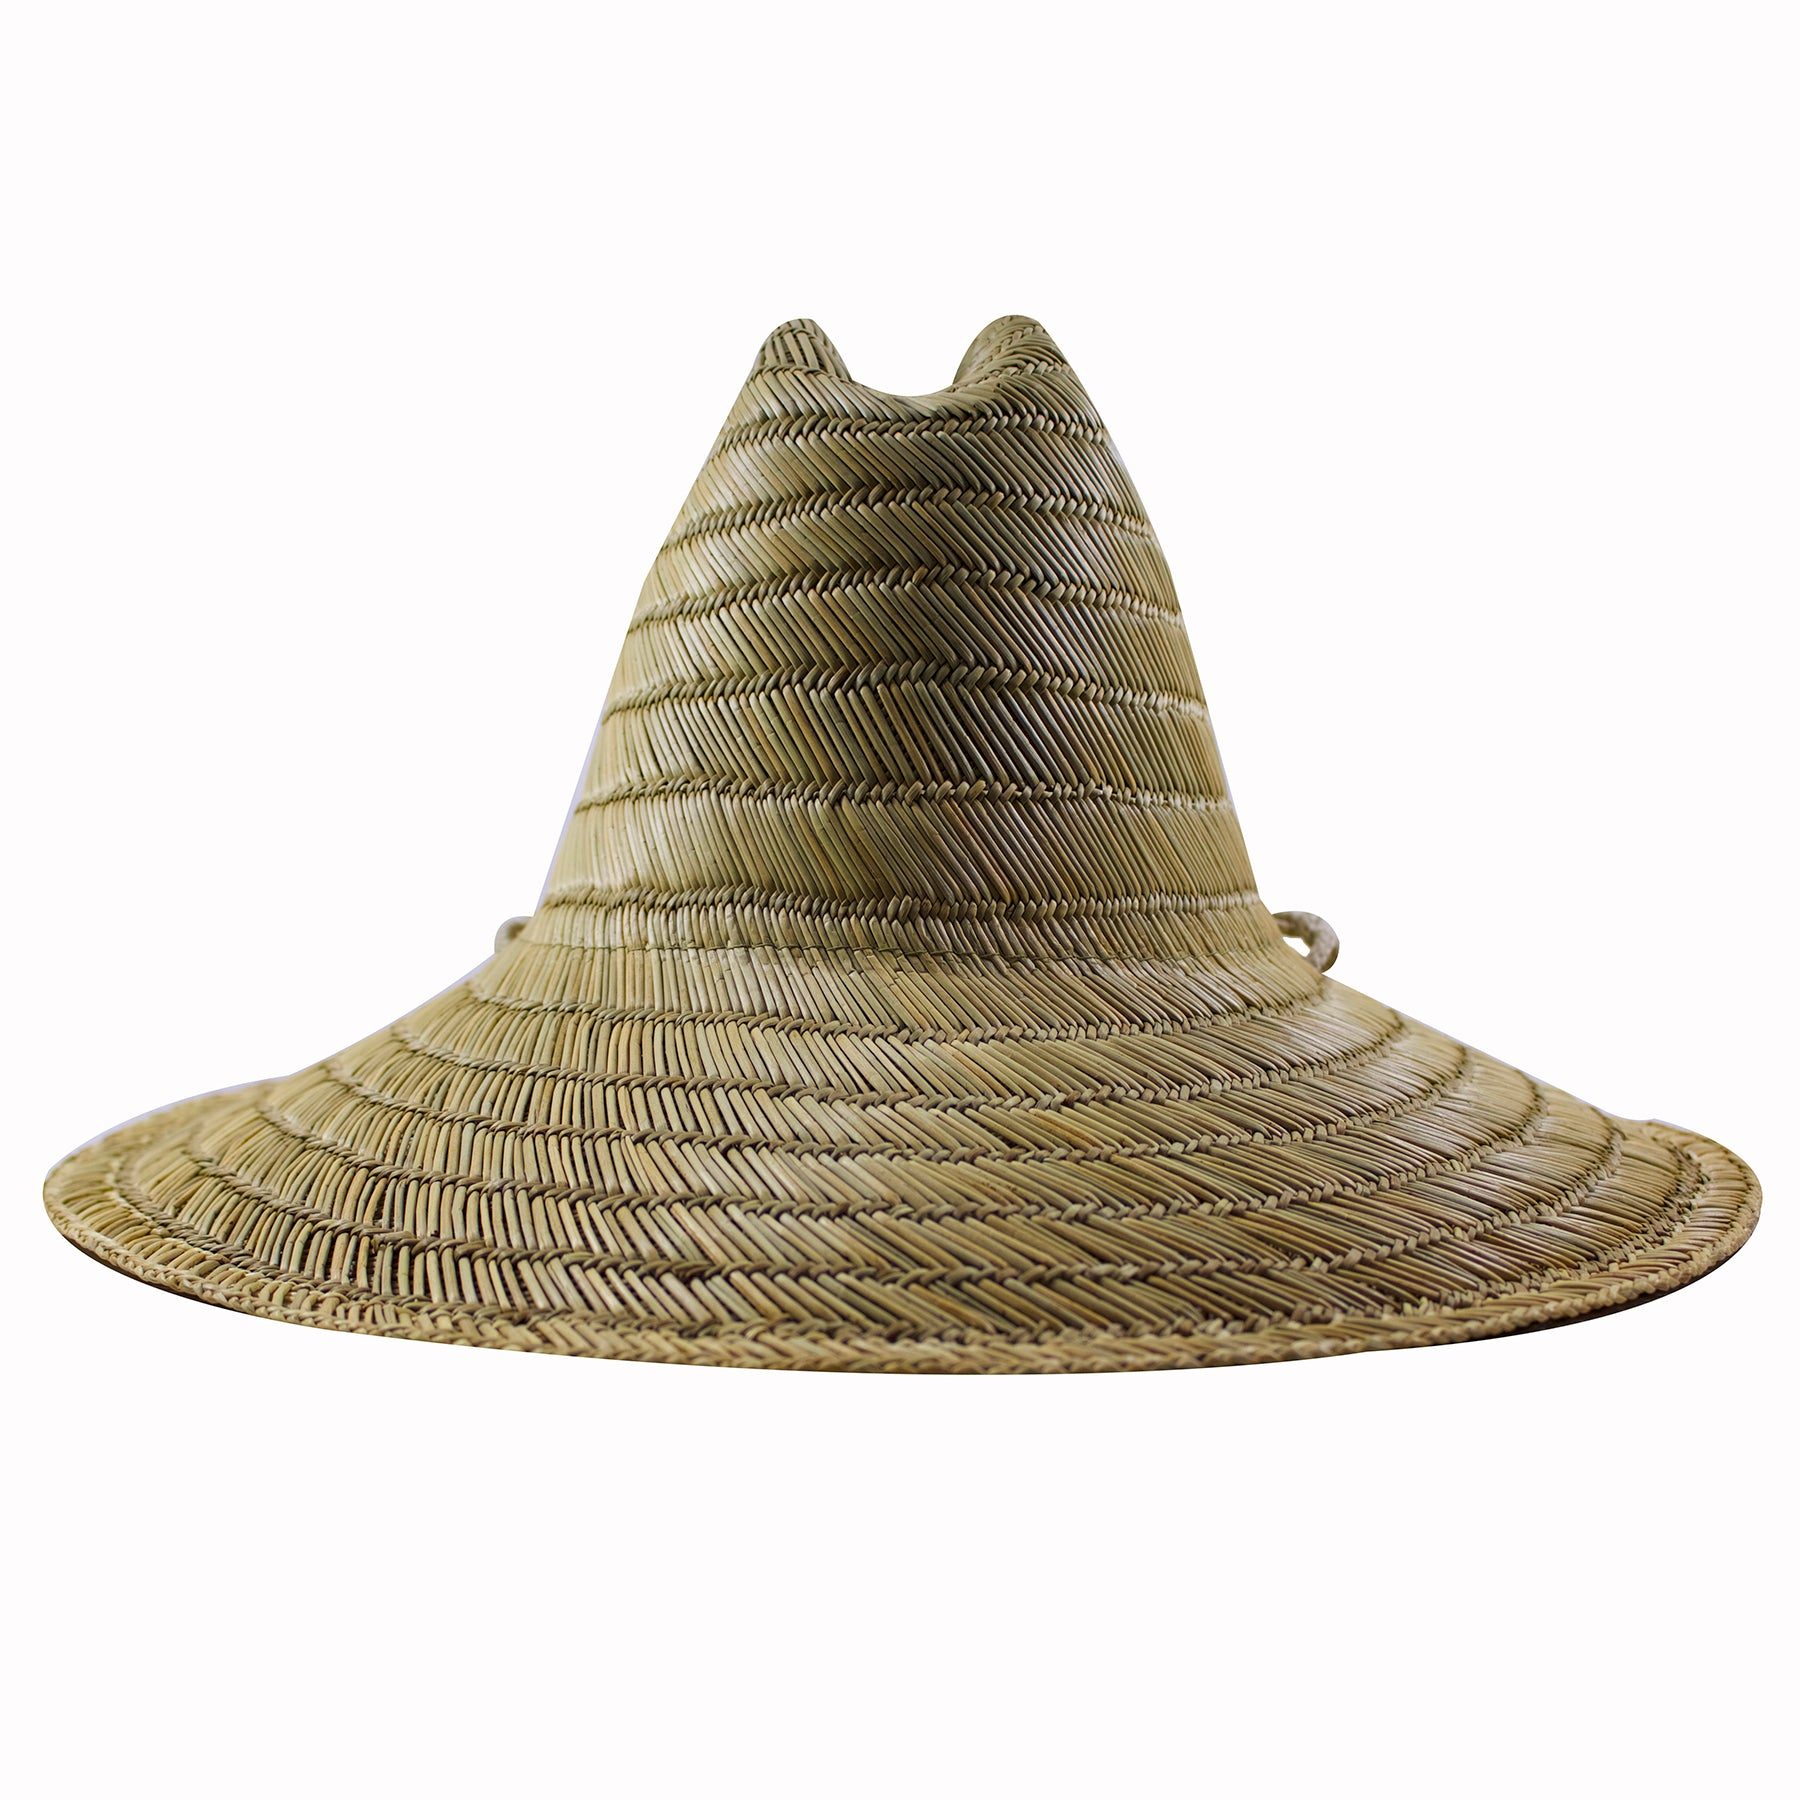 95f7821bb5fd41 this lifeguard straw hat is perfectly designed for sun protection